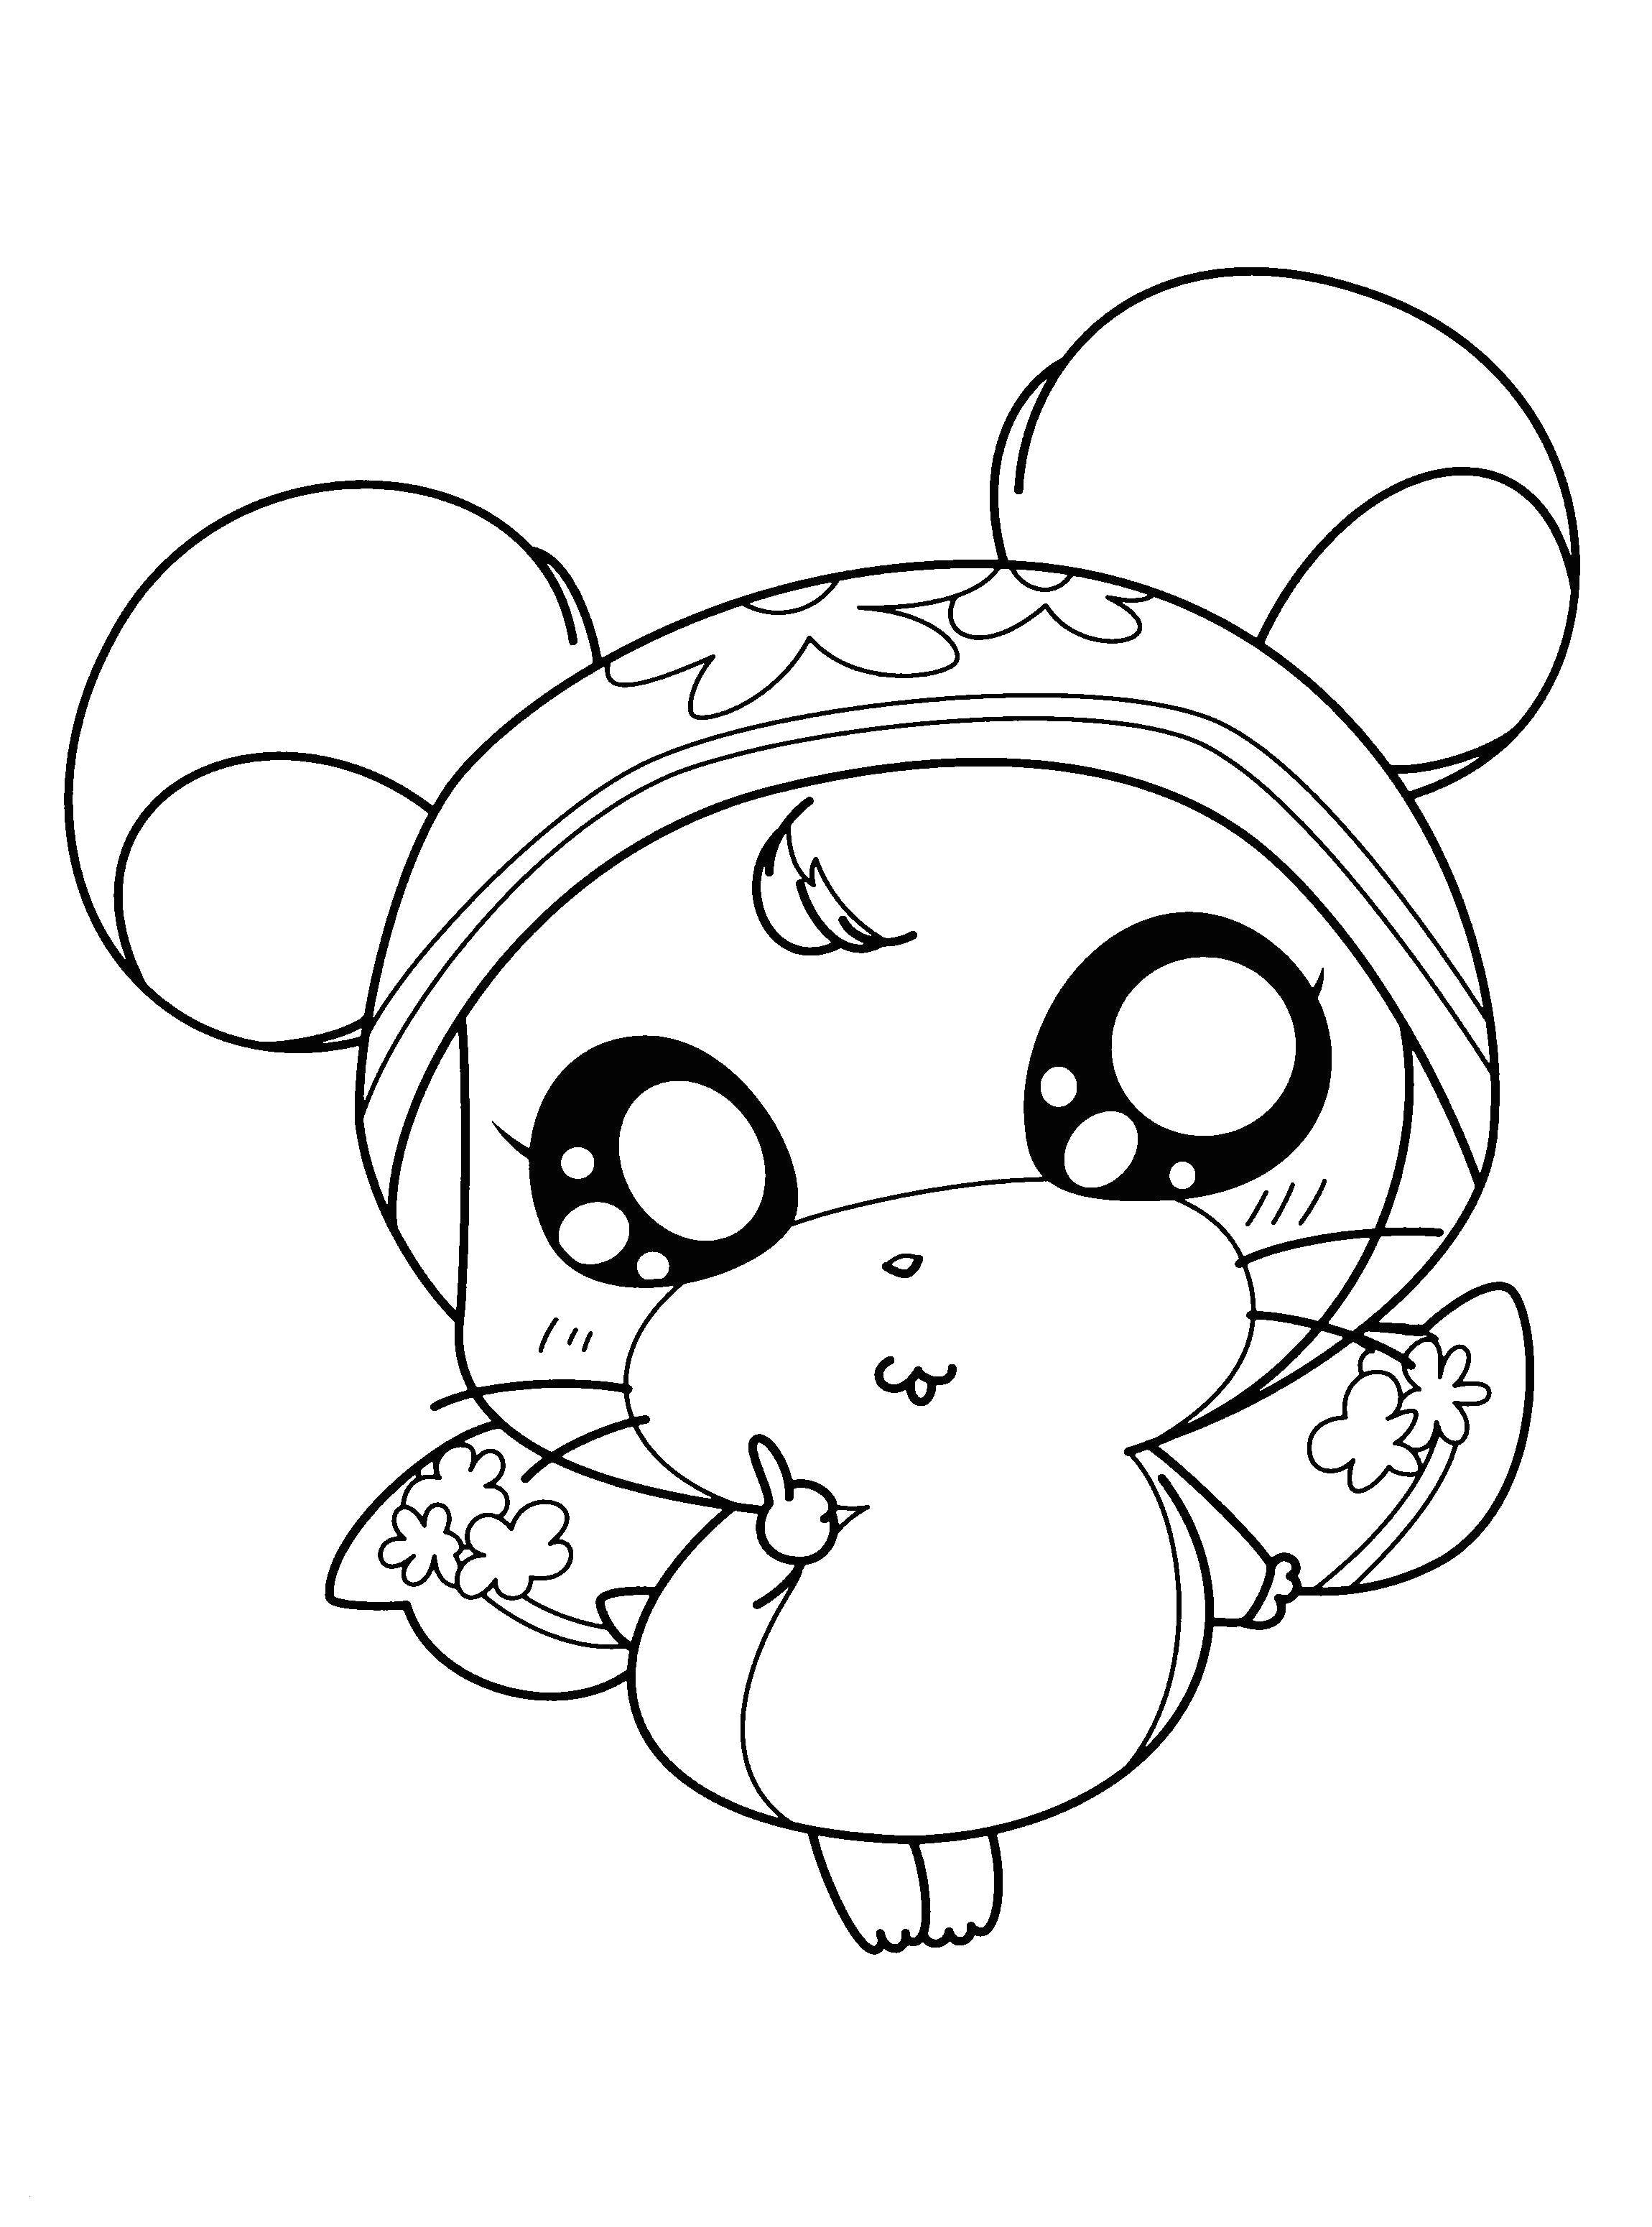 coloring pages for girls printable free girl scout coloring pages beautiful printable cds 0d fun